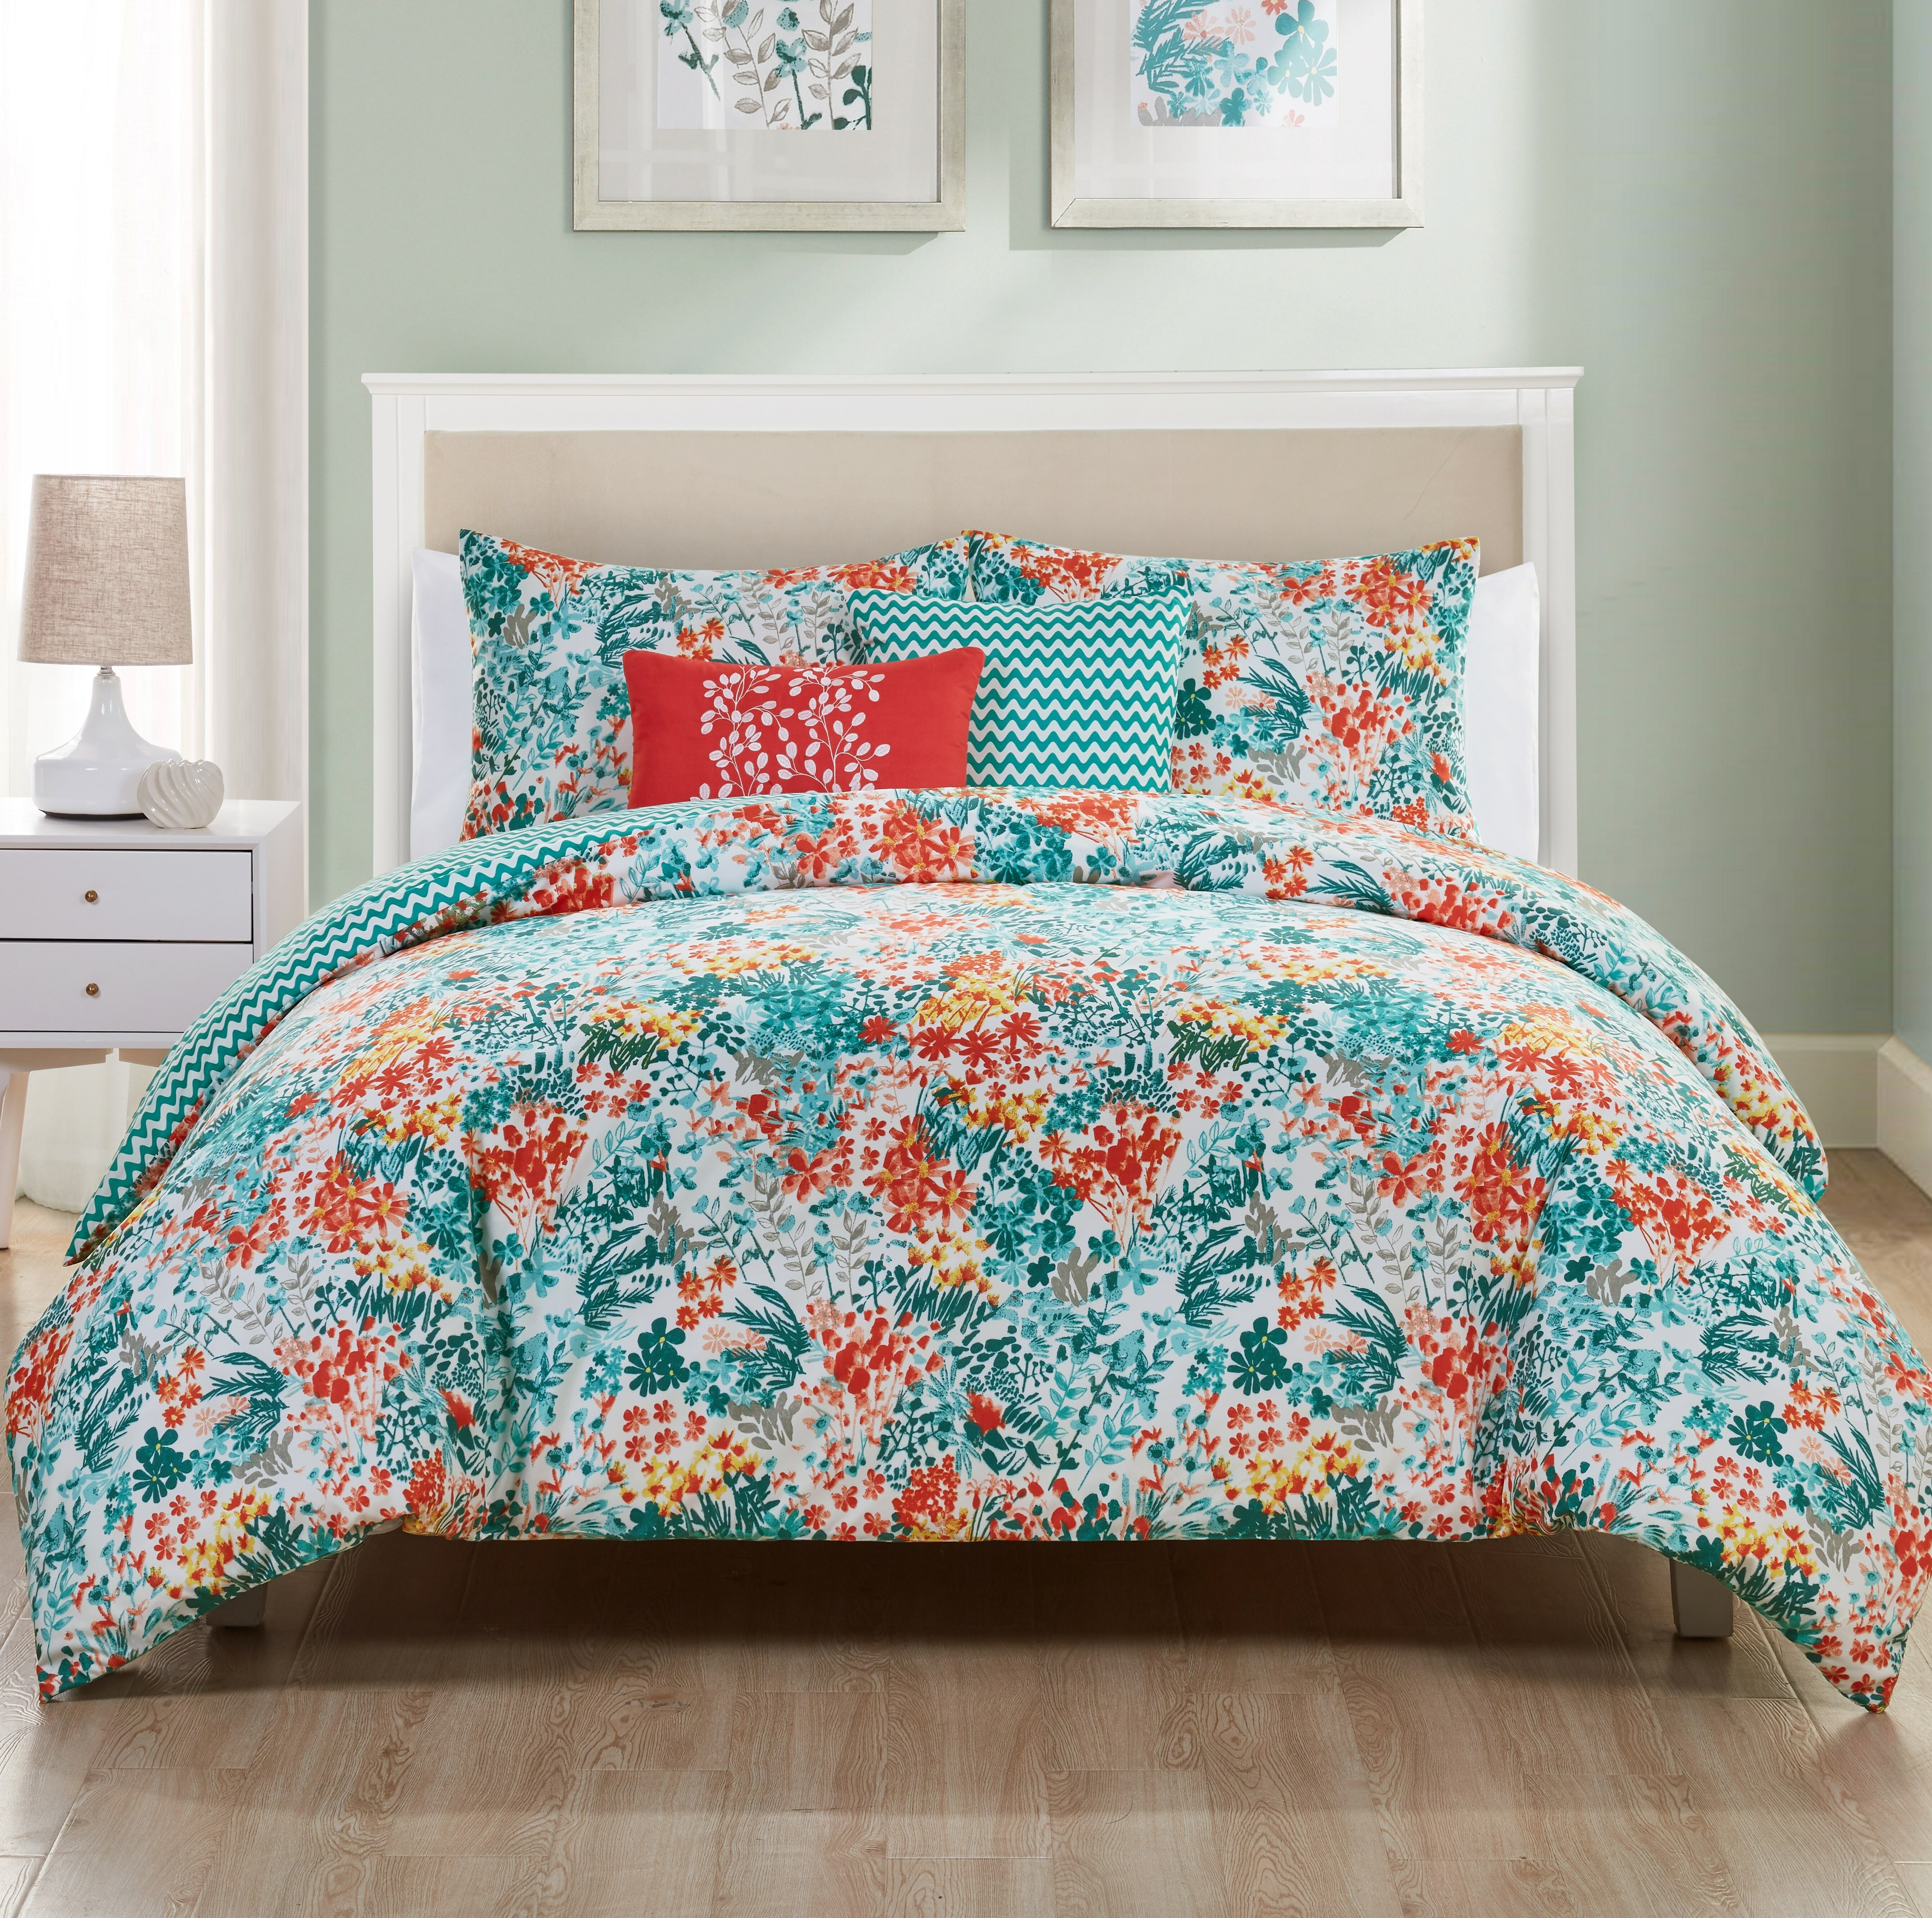 collection design sounthern your southern southen bedroom bed passport bedding beautiful home tide cheap max studio for